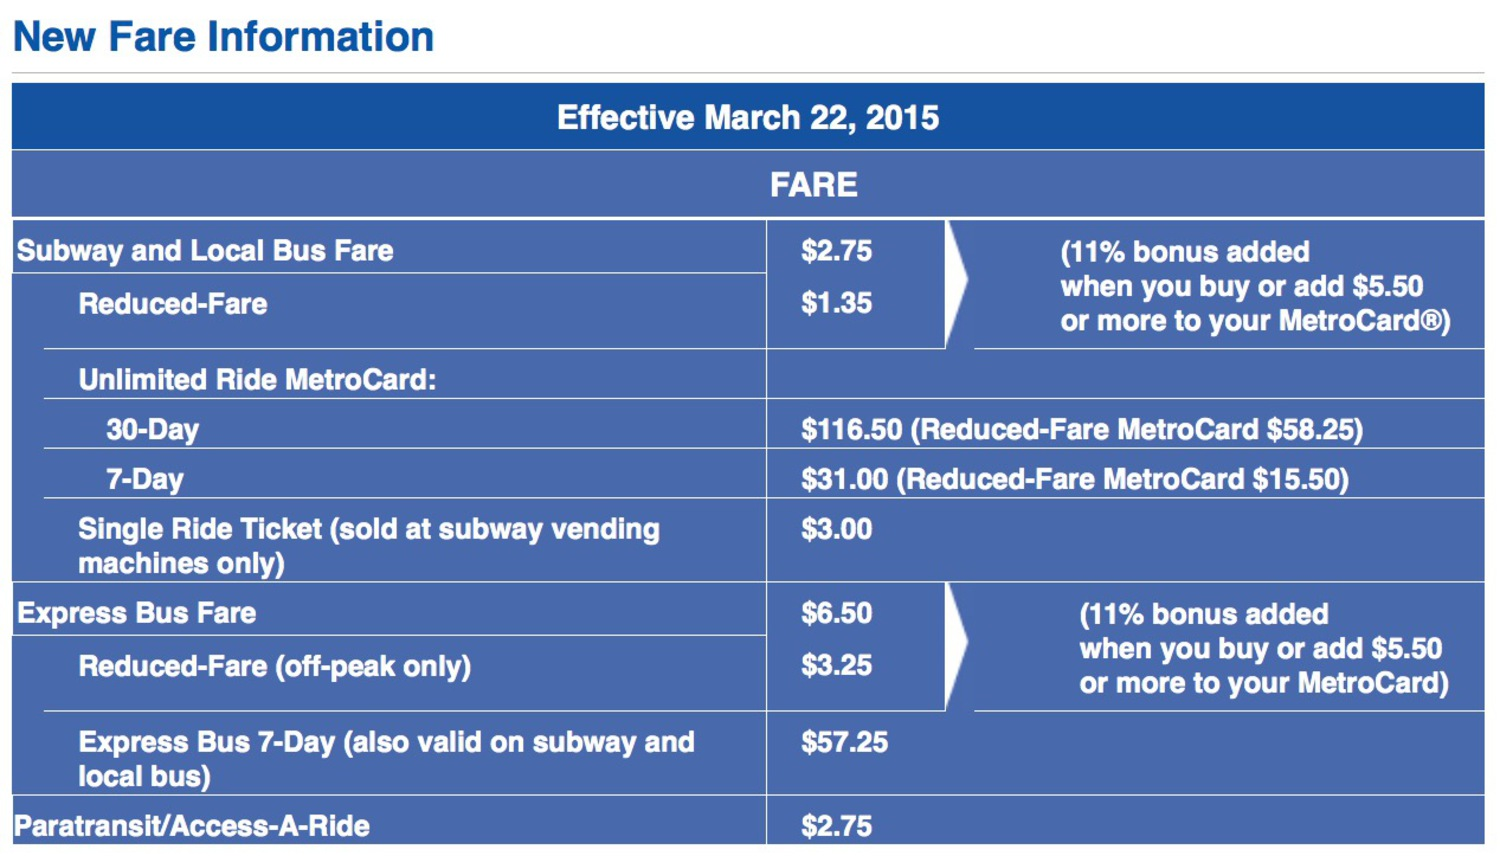 MTA's New Fare Information for March 2015